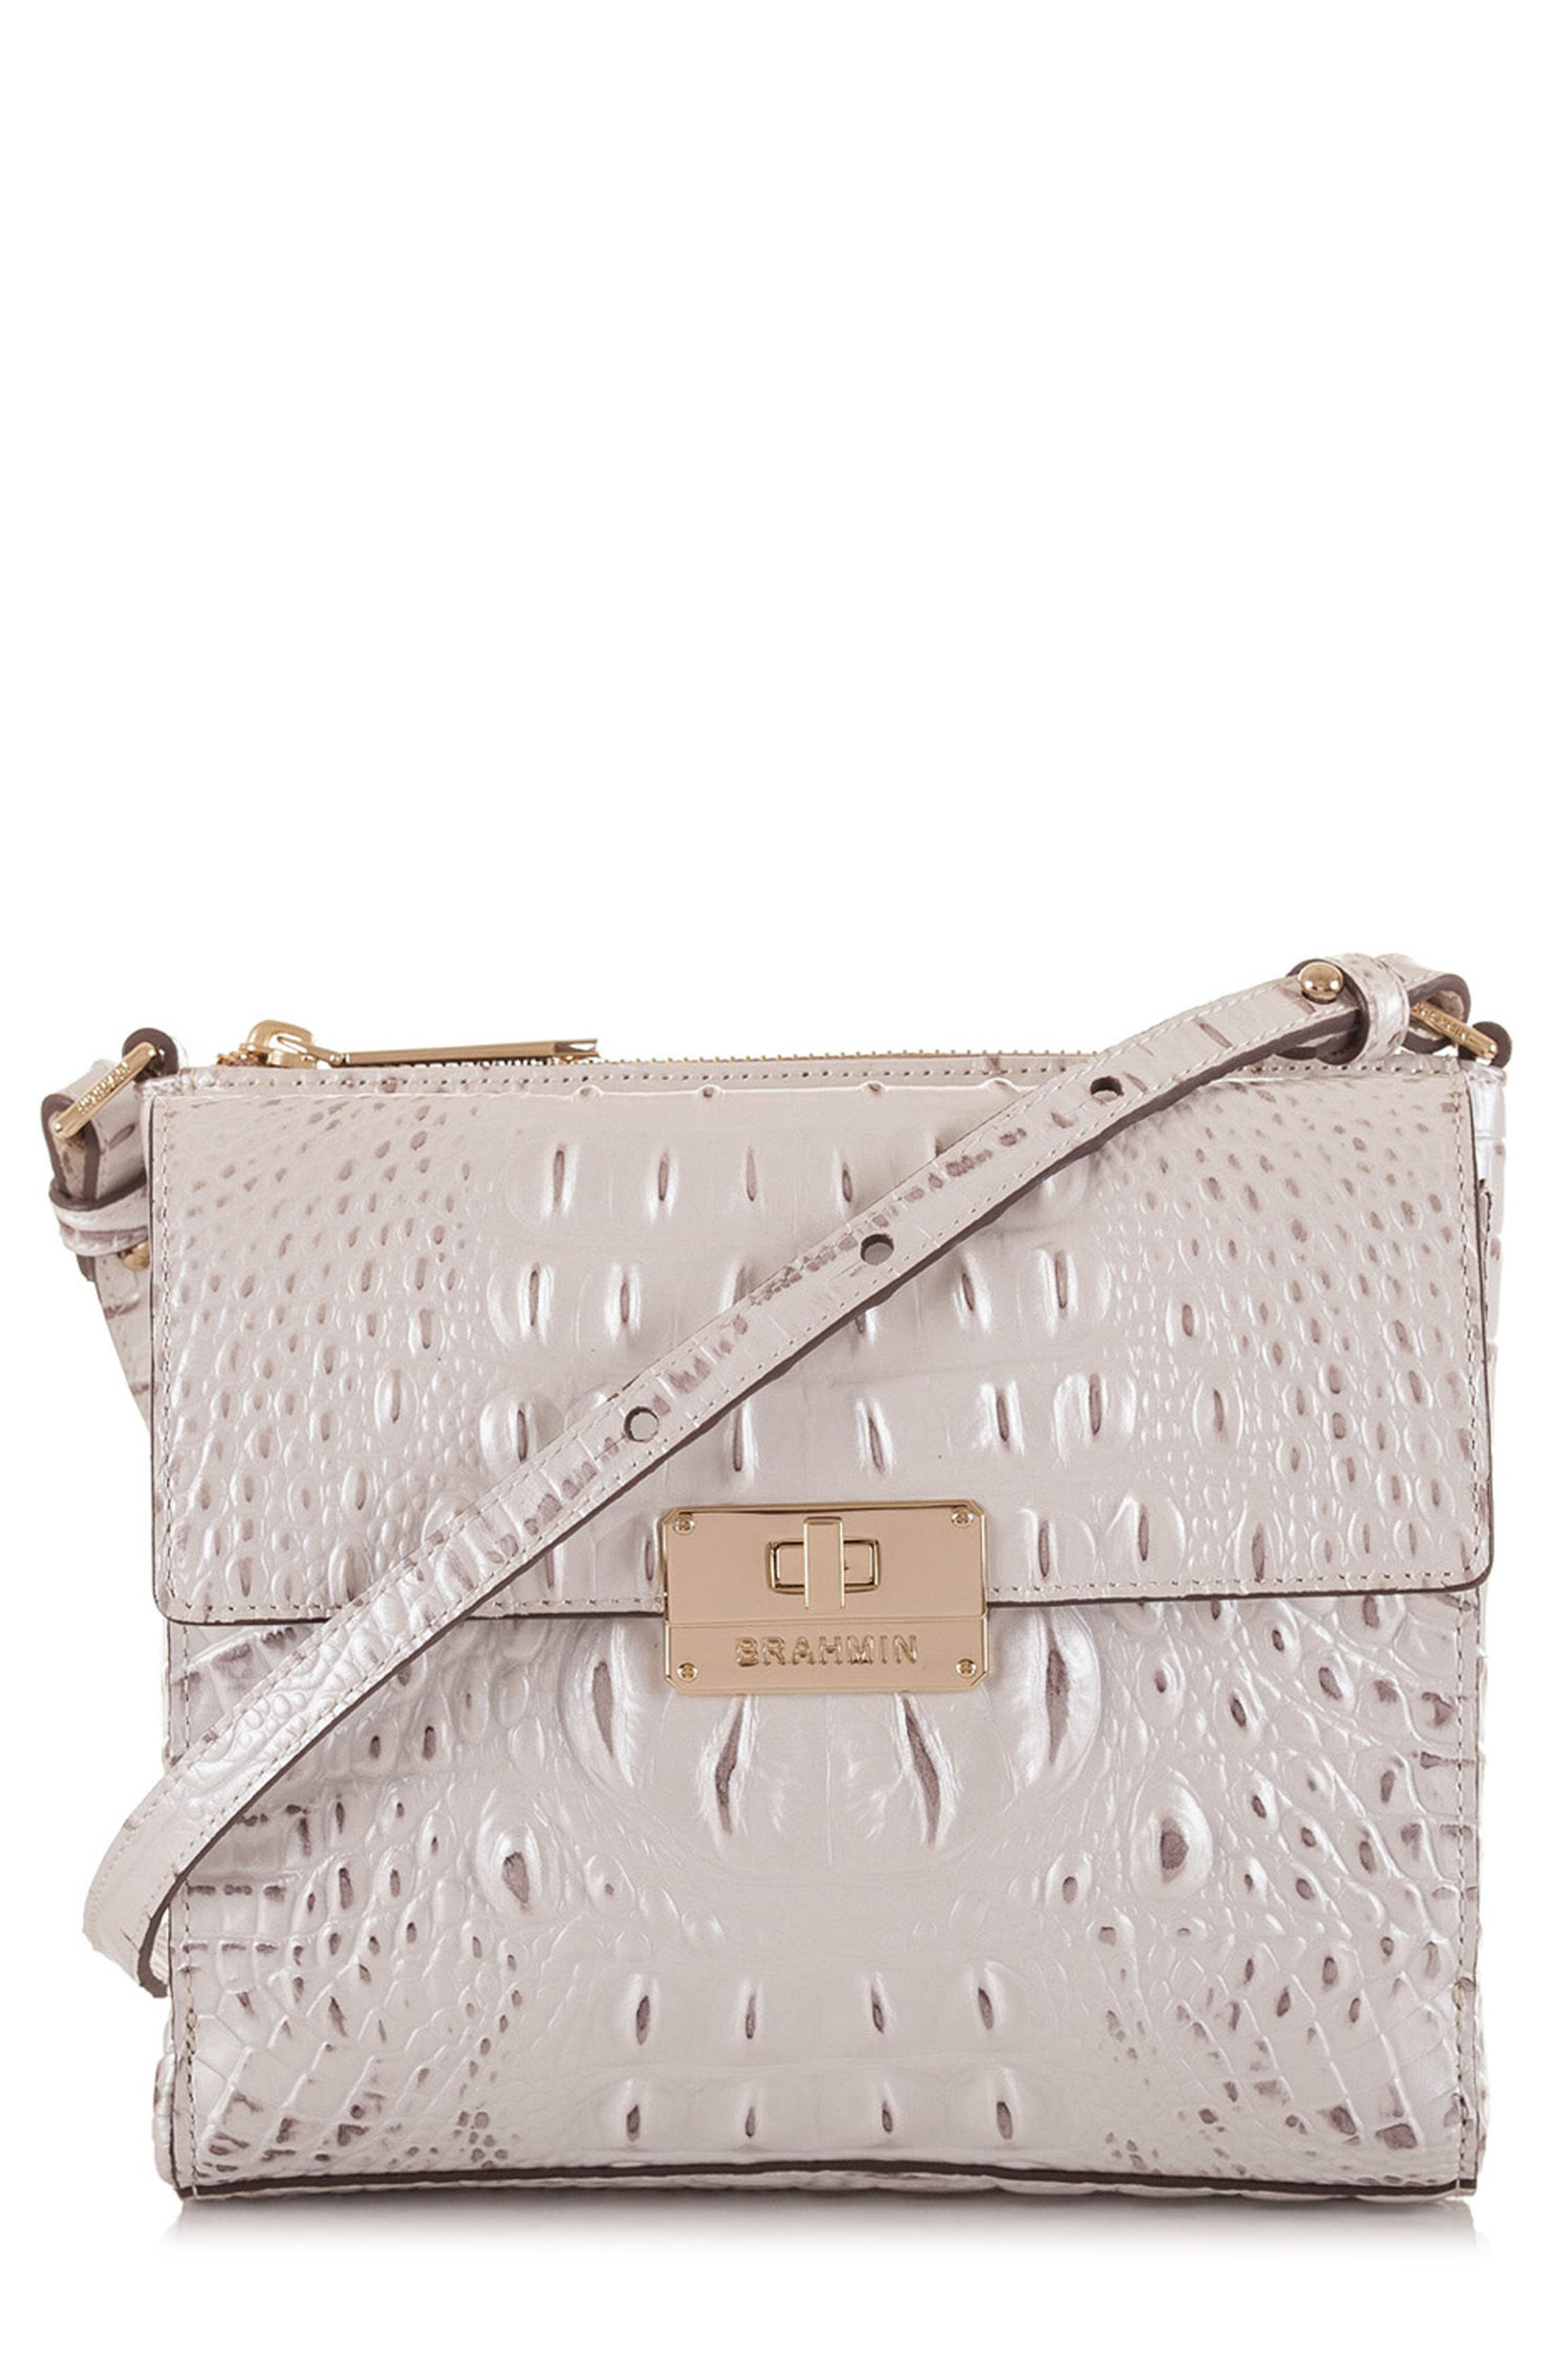 Melbourne Manhattan Croc Embossed Leather Crossbody Bag,                             Main thumbnail 1, color,                             Toasted Macaroon